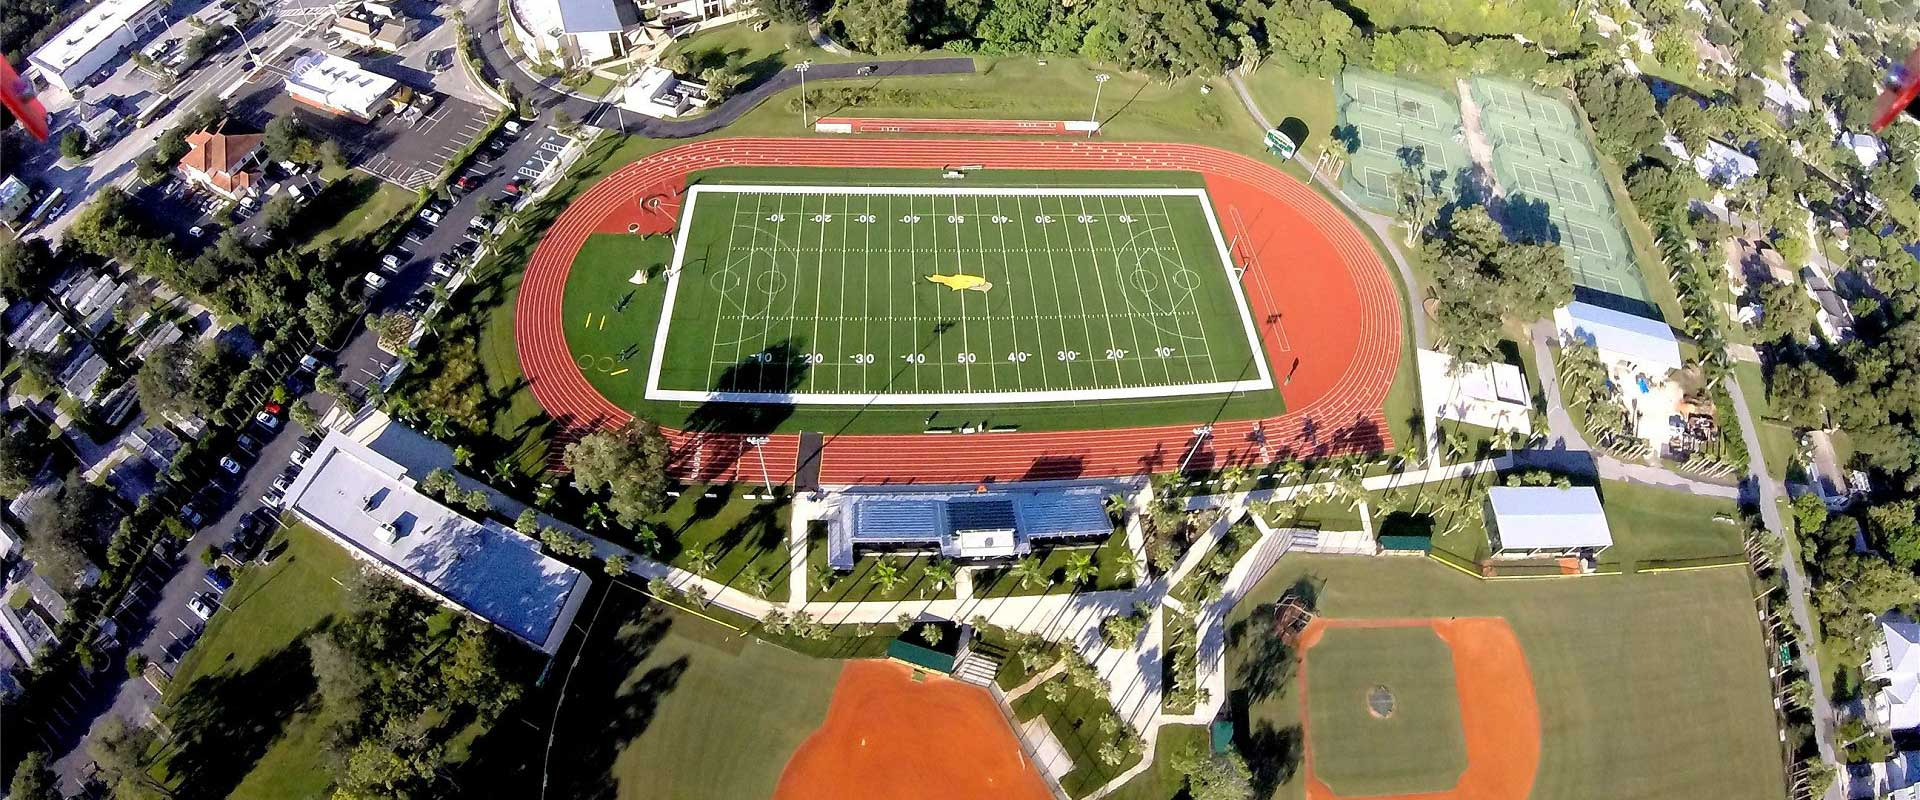 Aerial view of the athletic fields